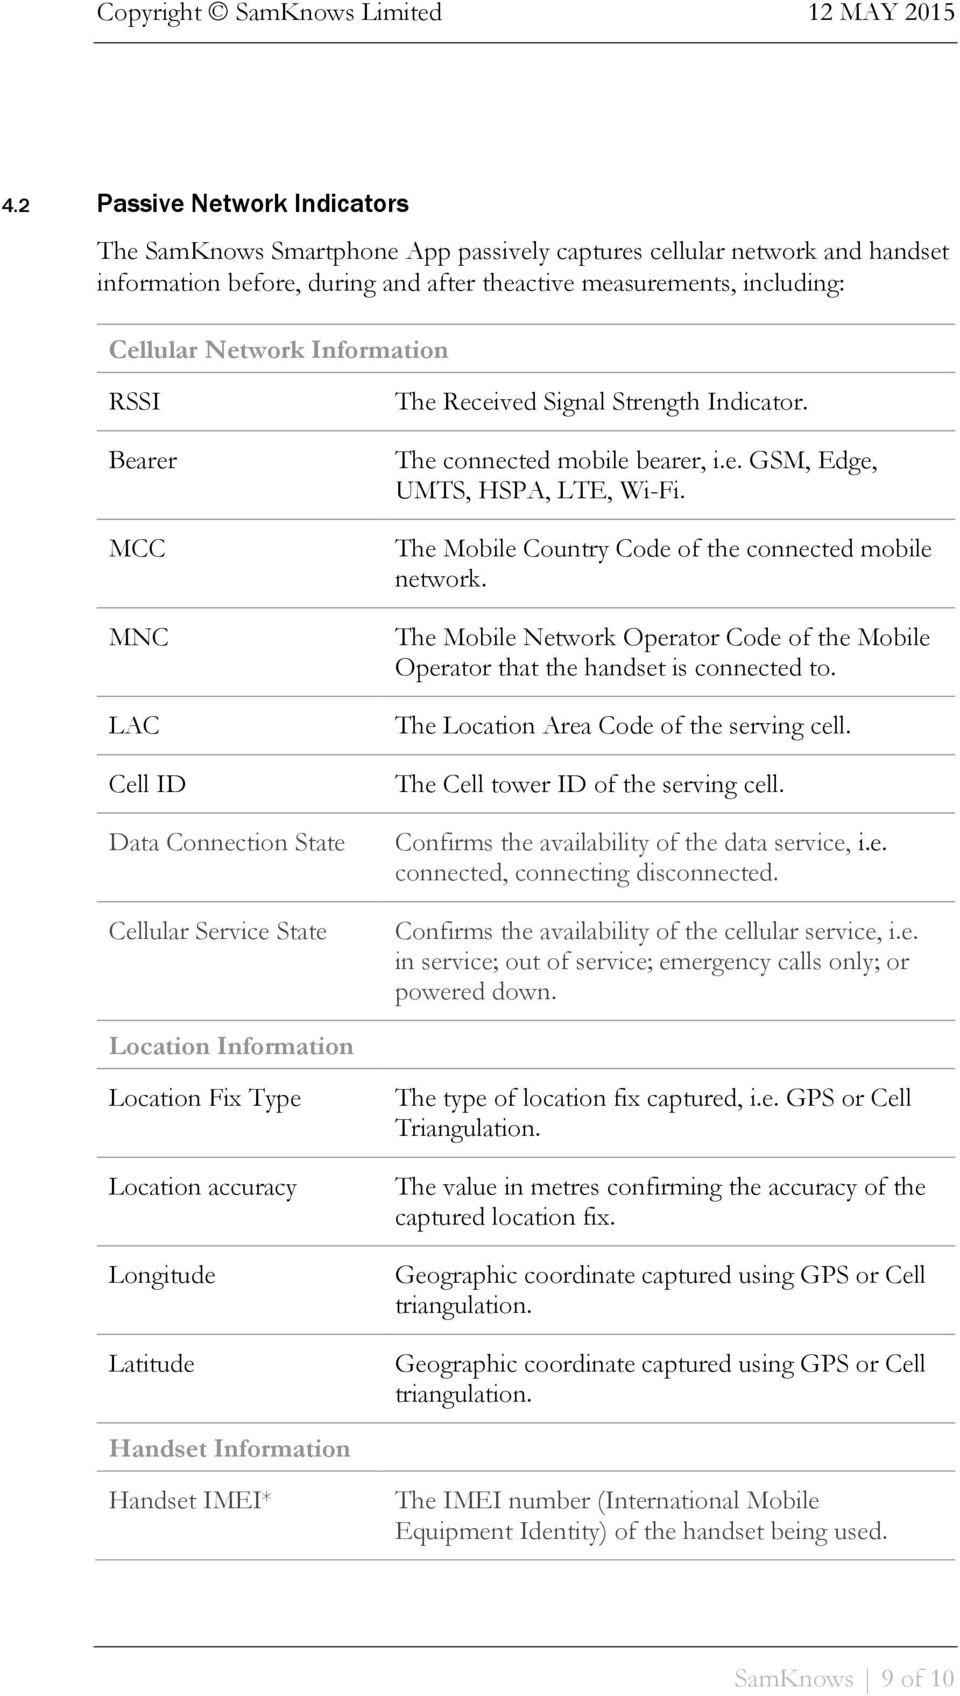 The Mobile Country Code of the connected mobile network. The Mobile Network Operator Code of the Mobile Operator that the handset is connected to. The Location Area Code of the serving cell.